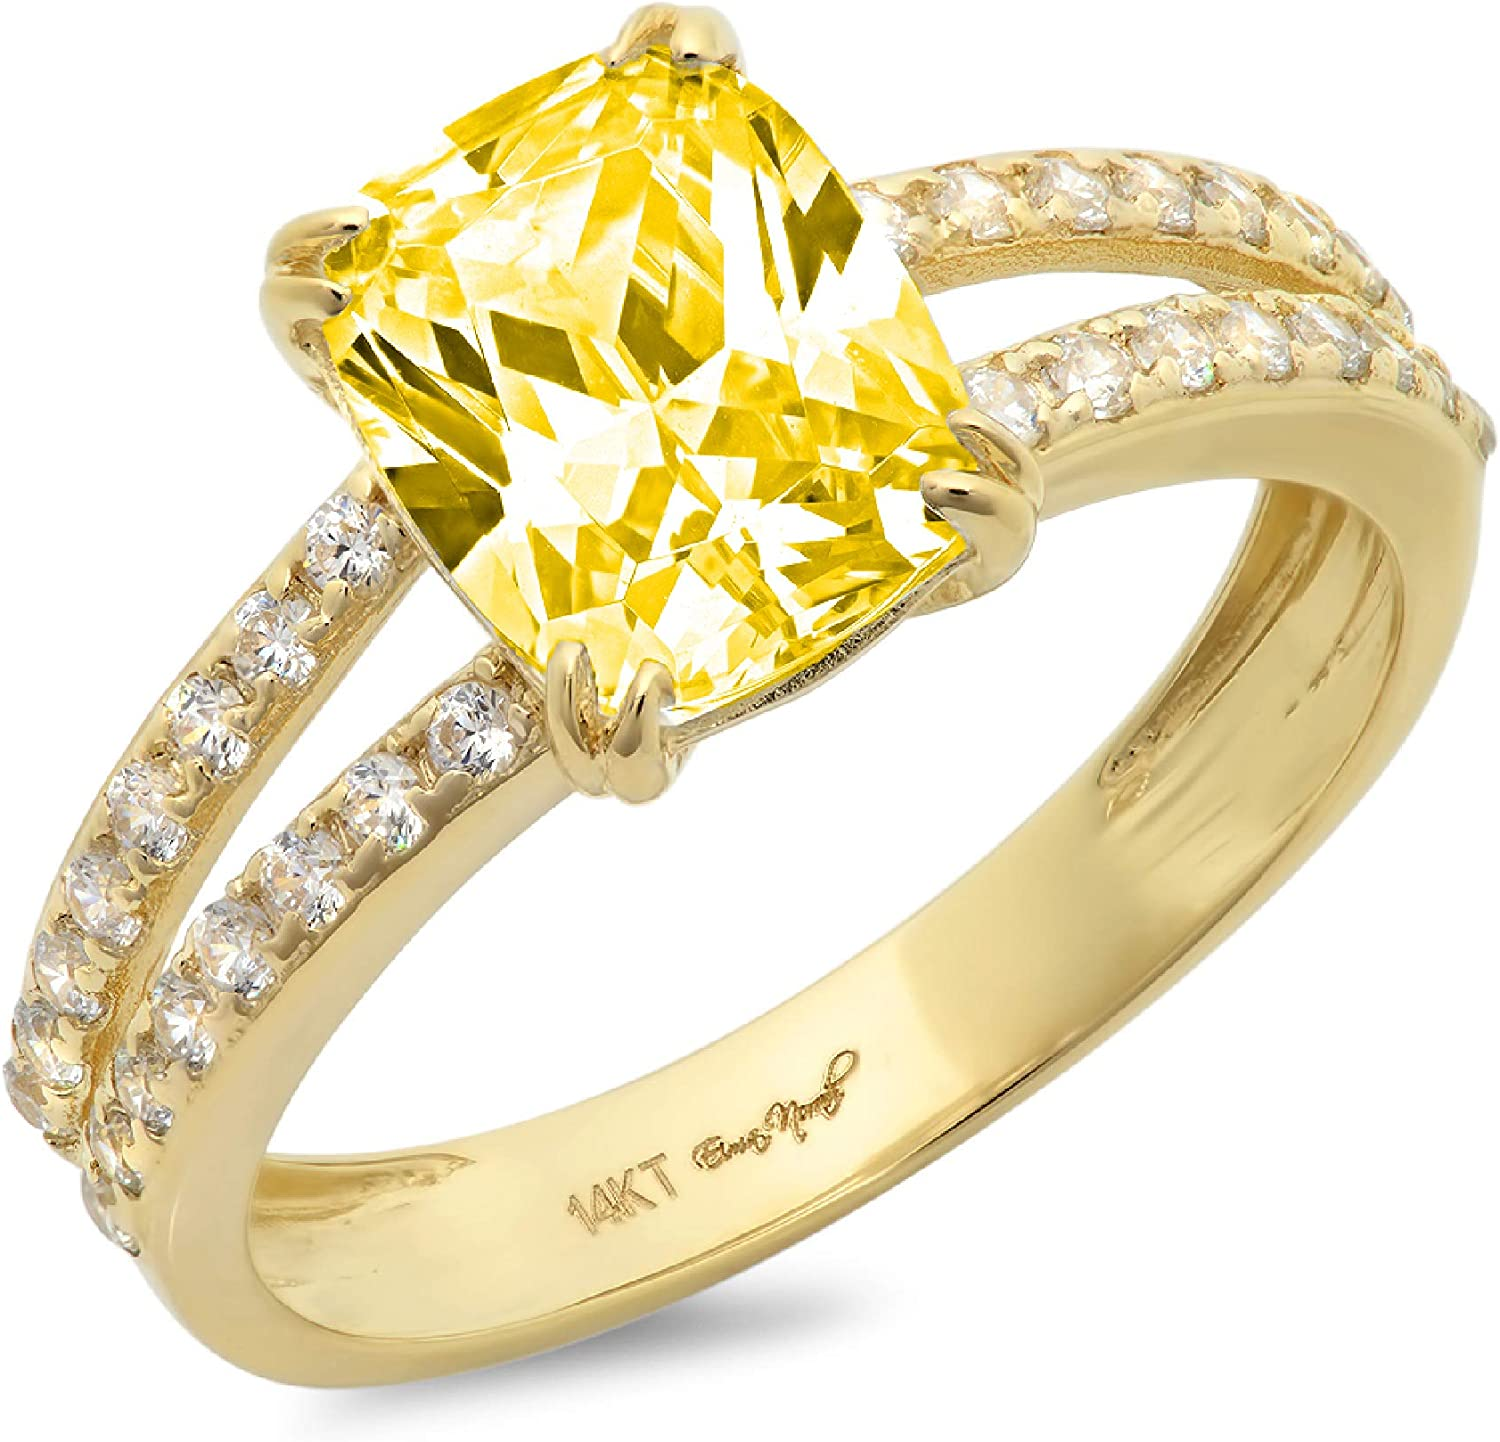 3.50 ct Brilliant Cushion Cut Solitaire with accent Canary Yellow Simulated Diamond Ideal VVS1 Engagement Promise Statement Anniversary Bridal Wedding Ring 14k Yellow Gold